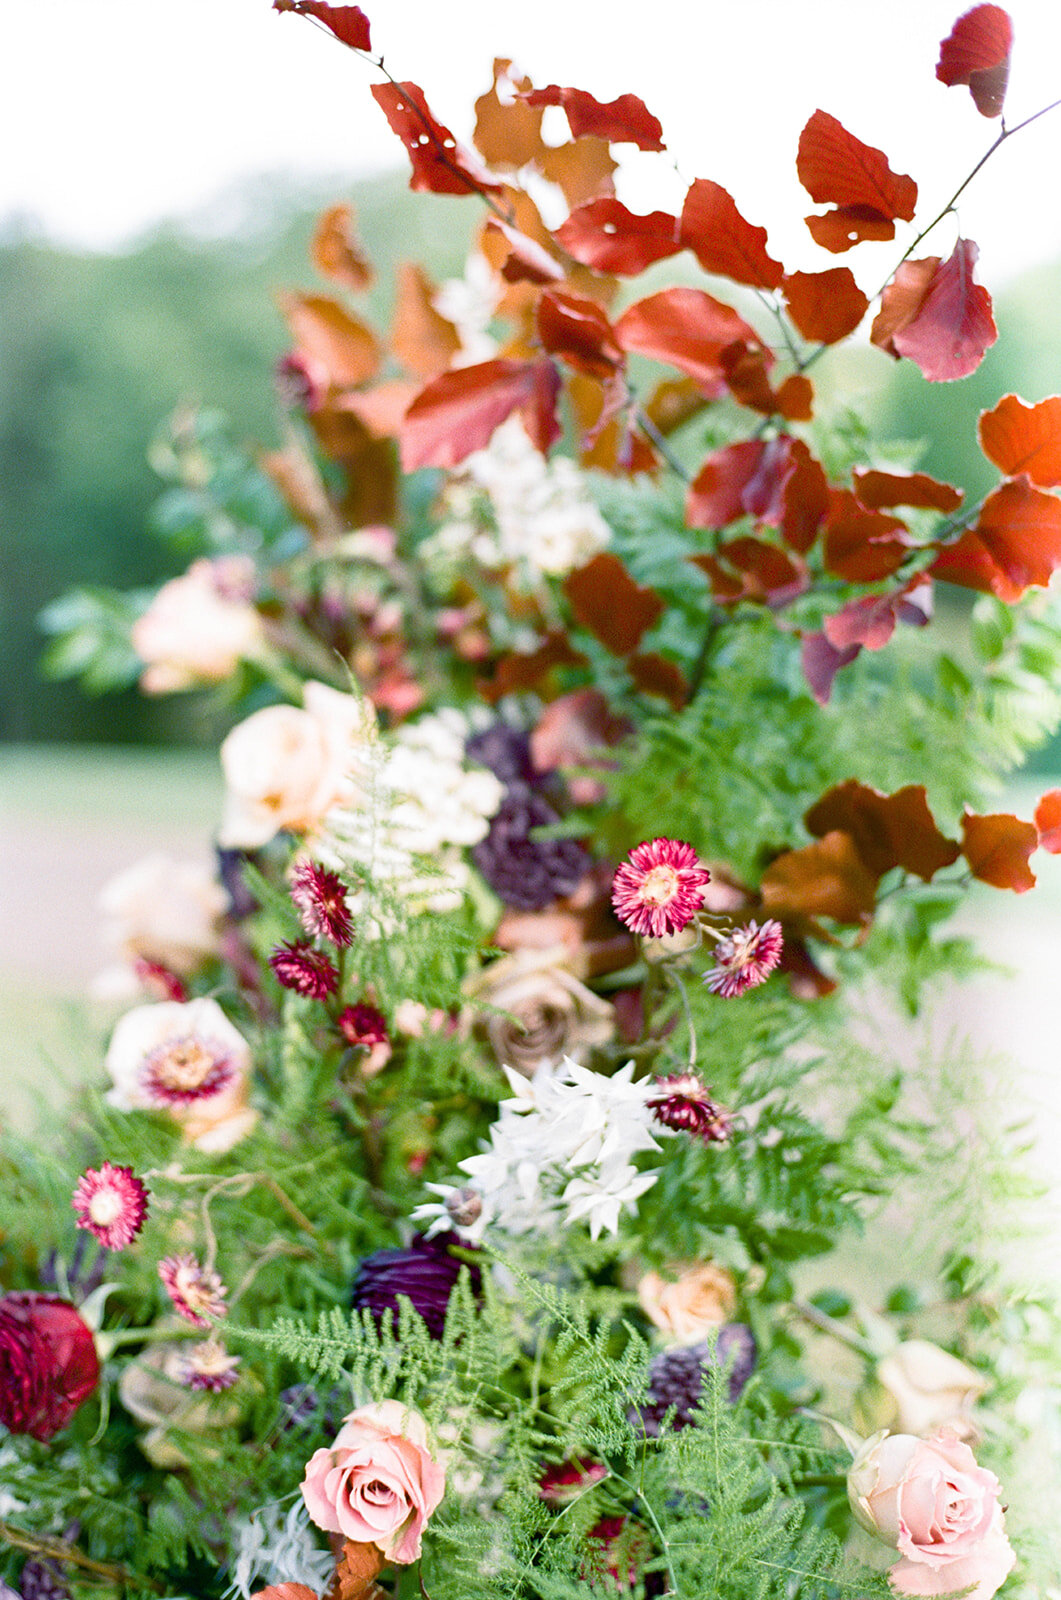 Freestanding wedding ceremony backdrop with lush greenery and a bright flowers. Nashville wedding floral design by Rosemary & Finch.